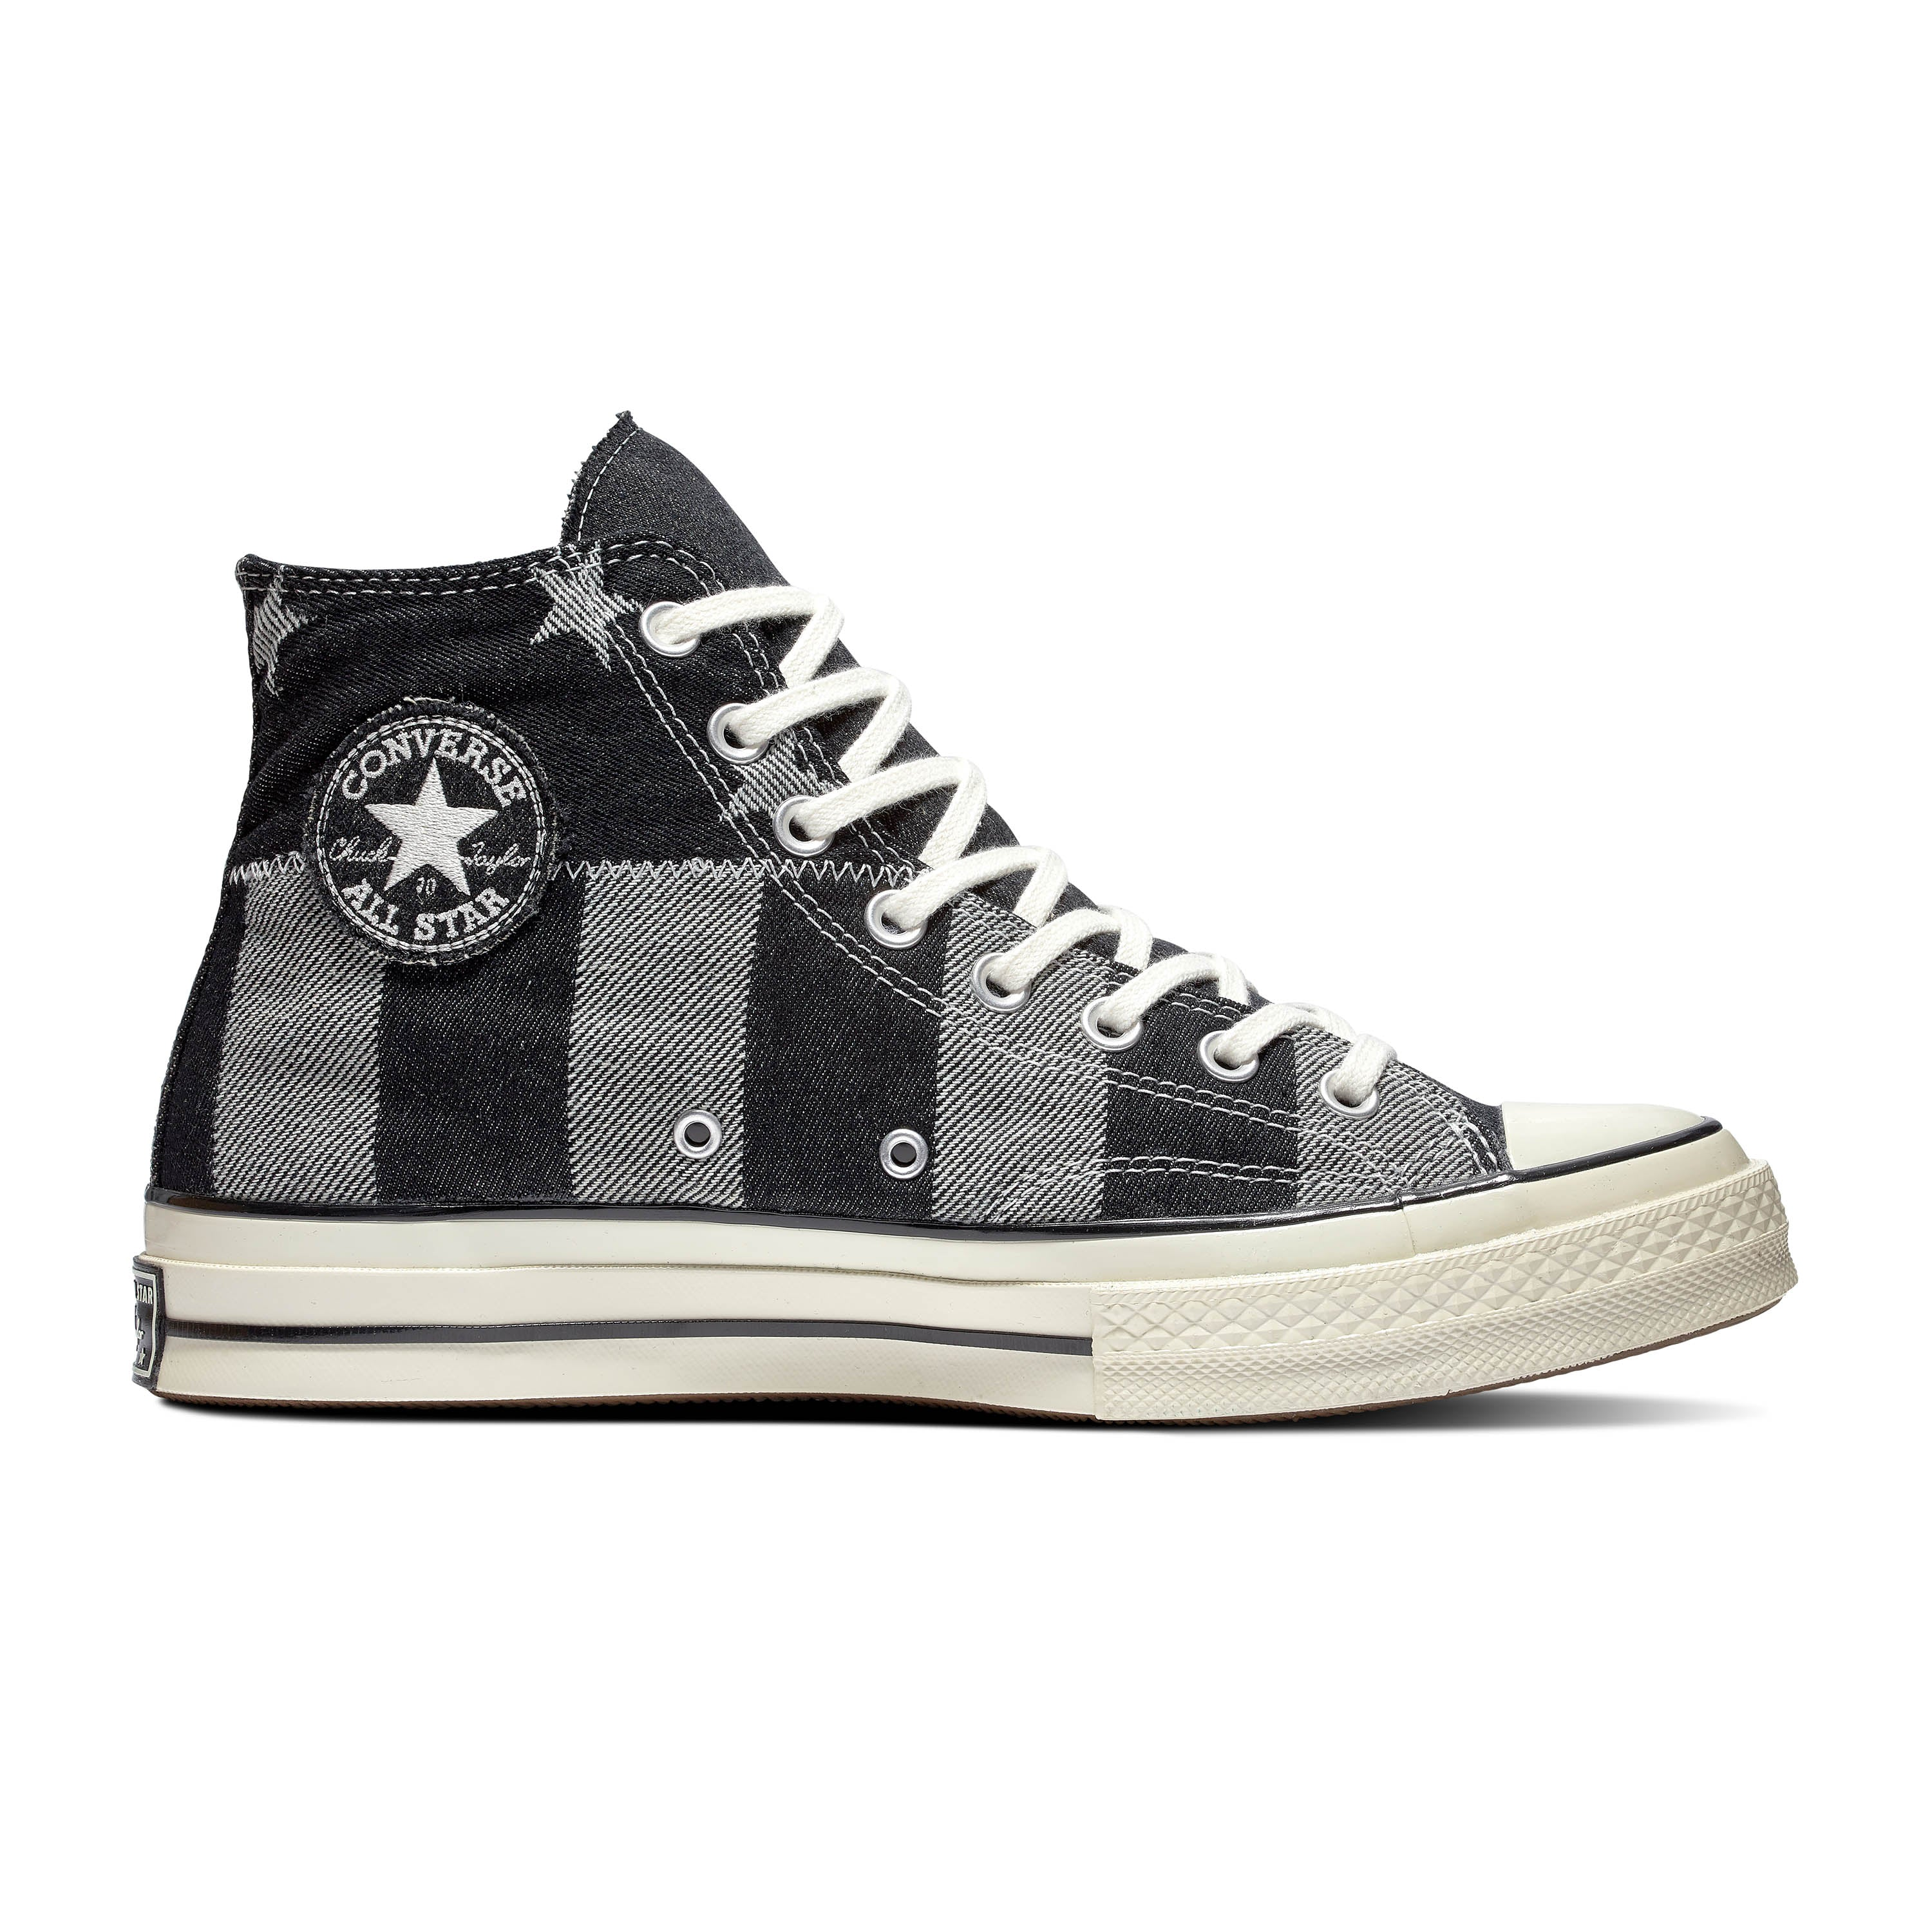 CONVERSE CHUCK 70 STARS AND STRIPES DENIM HI UNISEX SNEAKERS 167709C